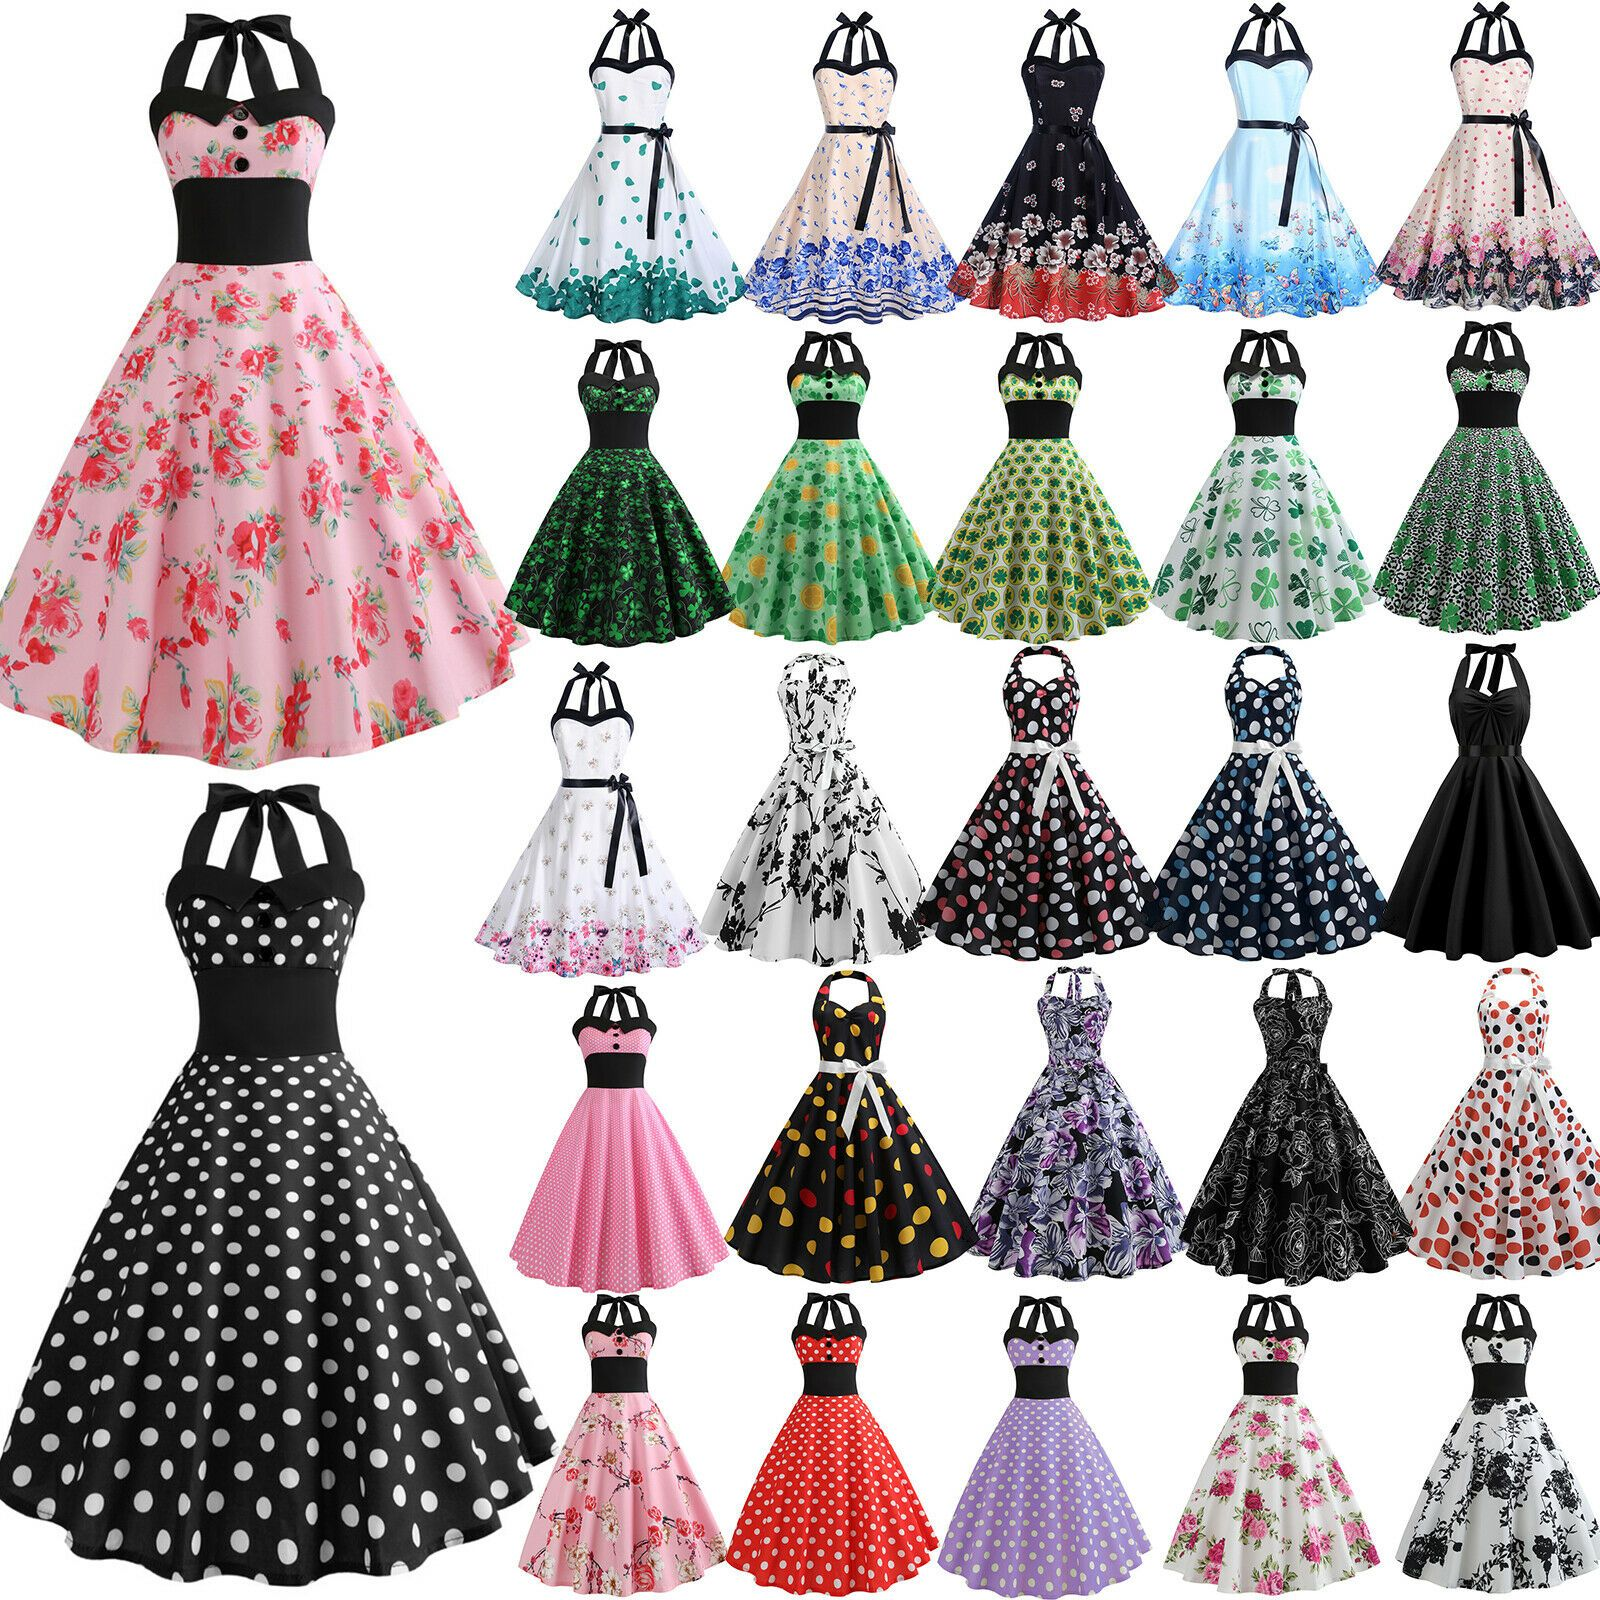 Damen Kleid Rockabilly Petticoat Sommer Retro 50er Cocktailkleid Freizeit Party